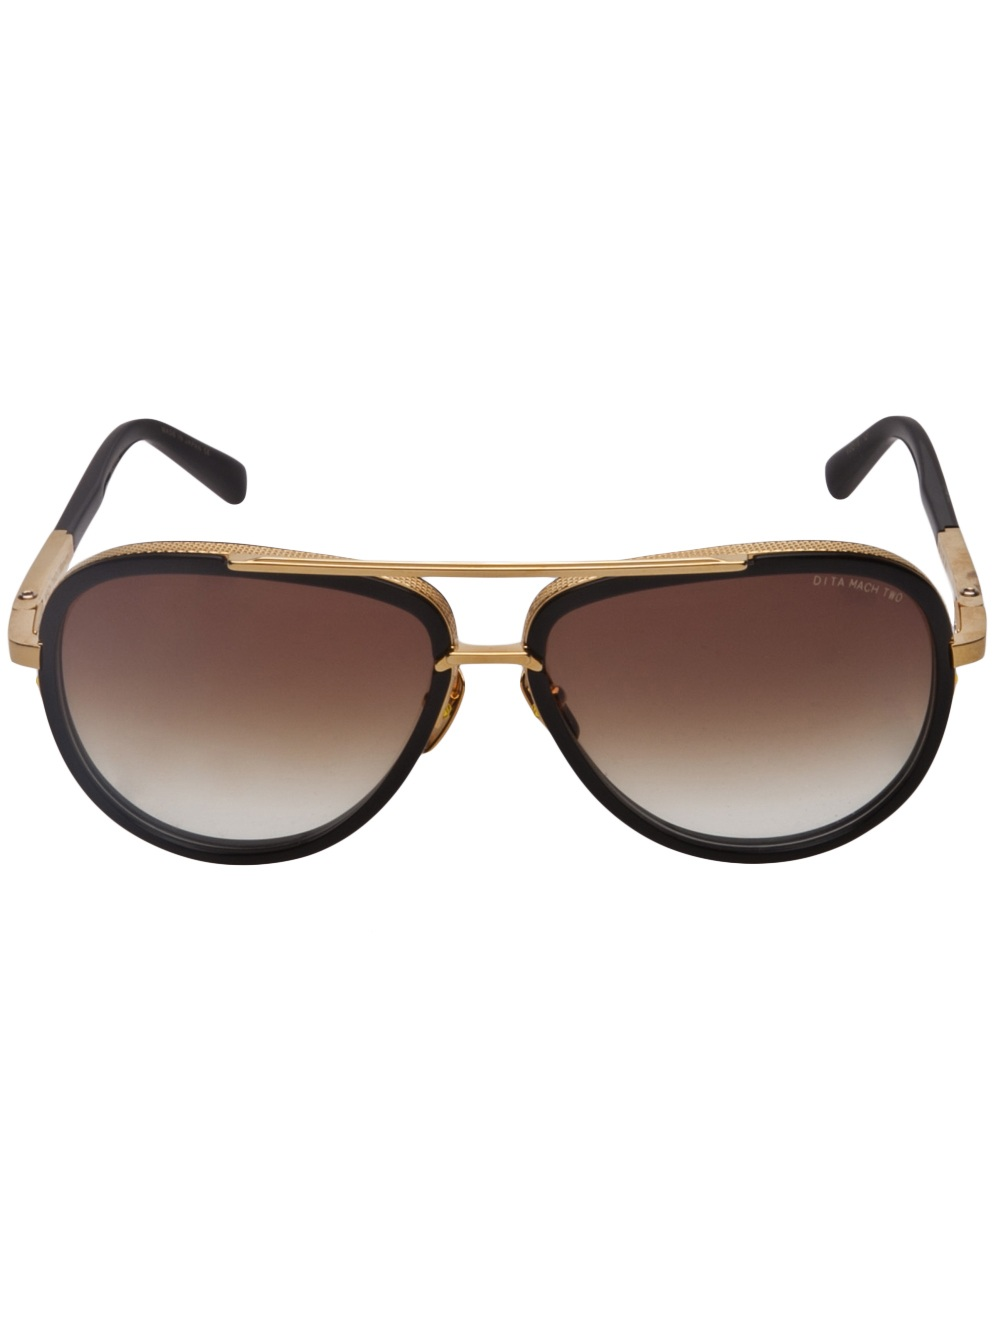 Dita Mach One Sunglasses in Gold | Lyst Dita Eyewear